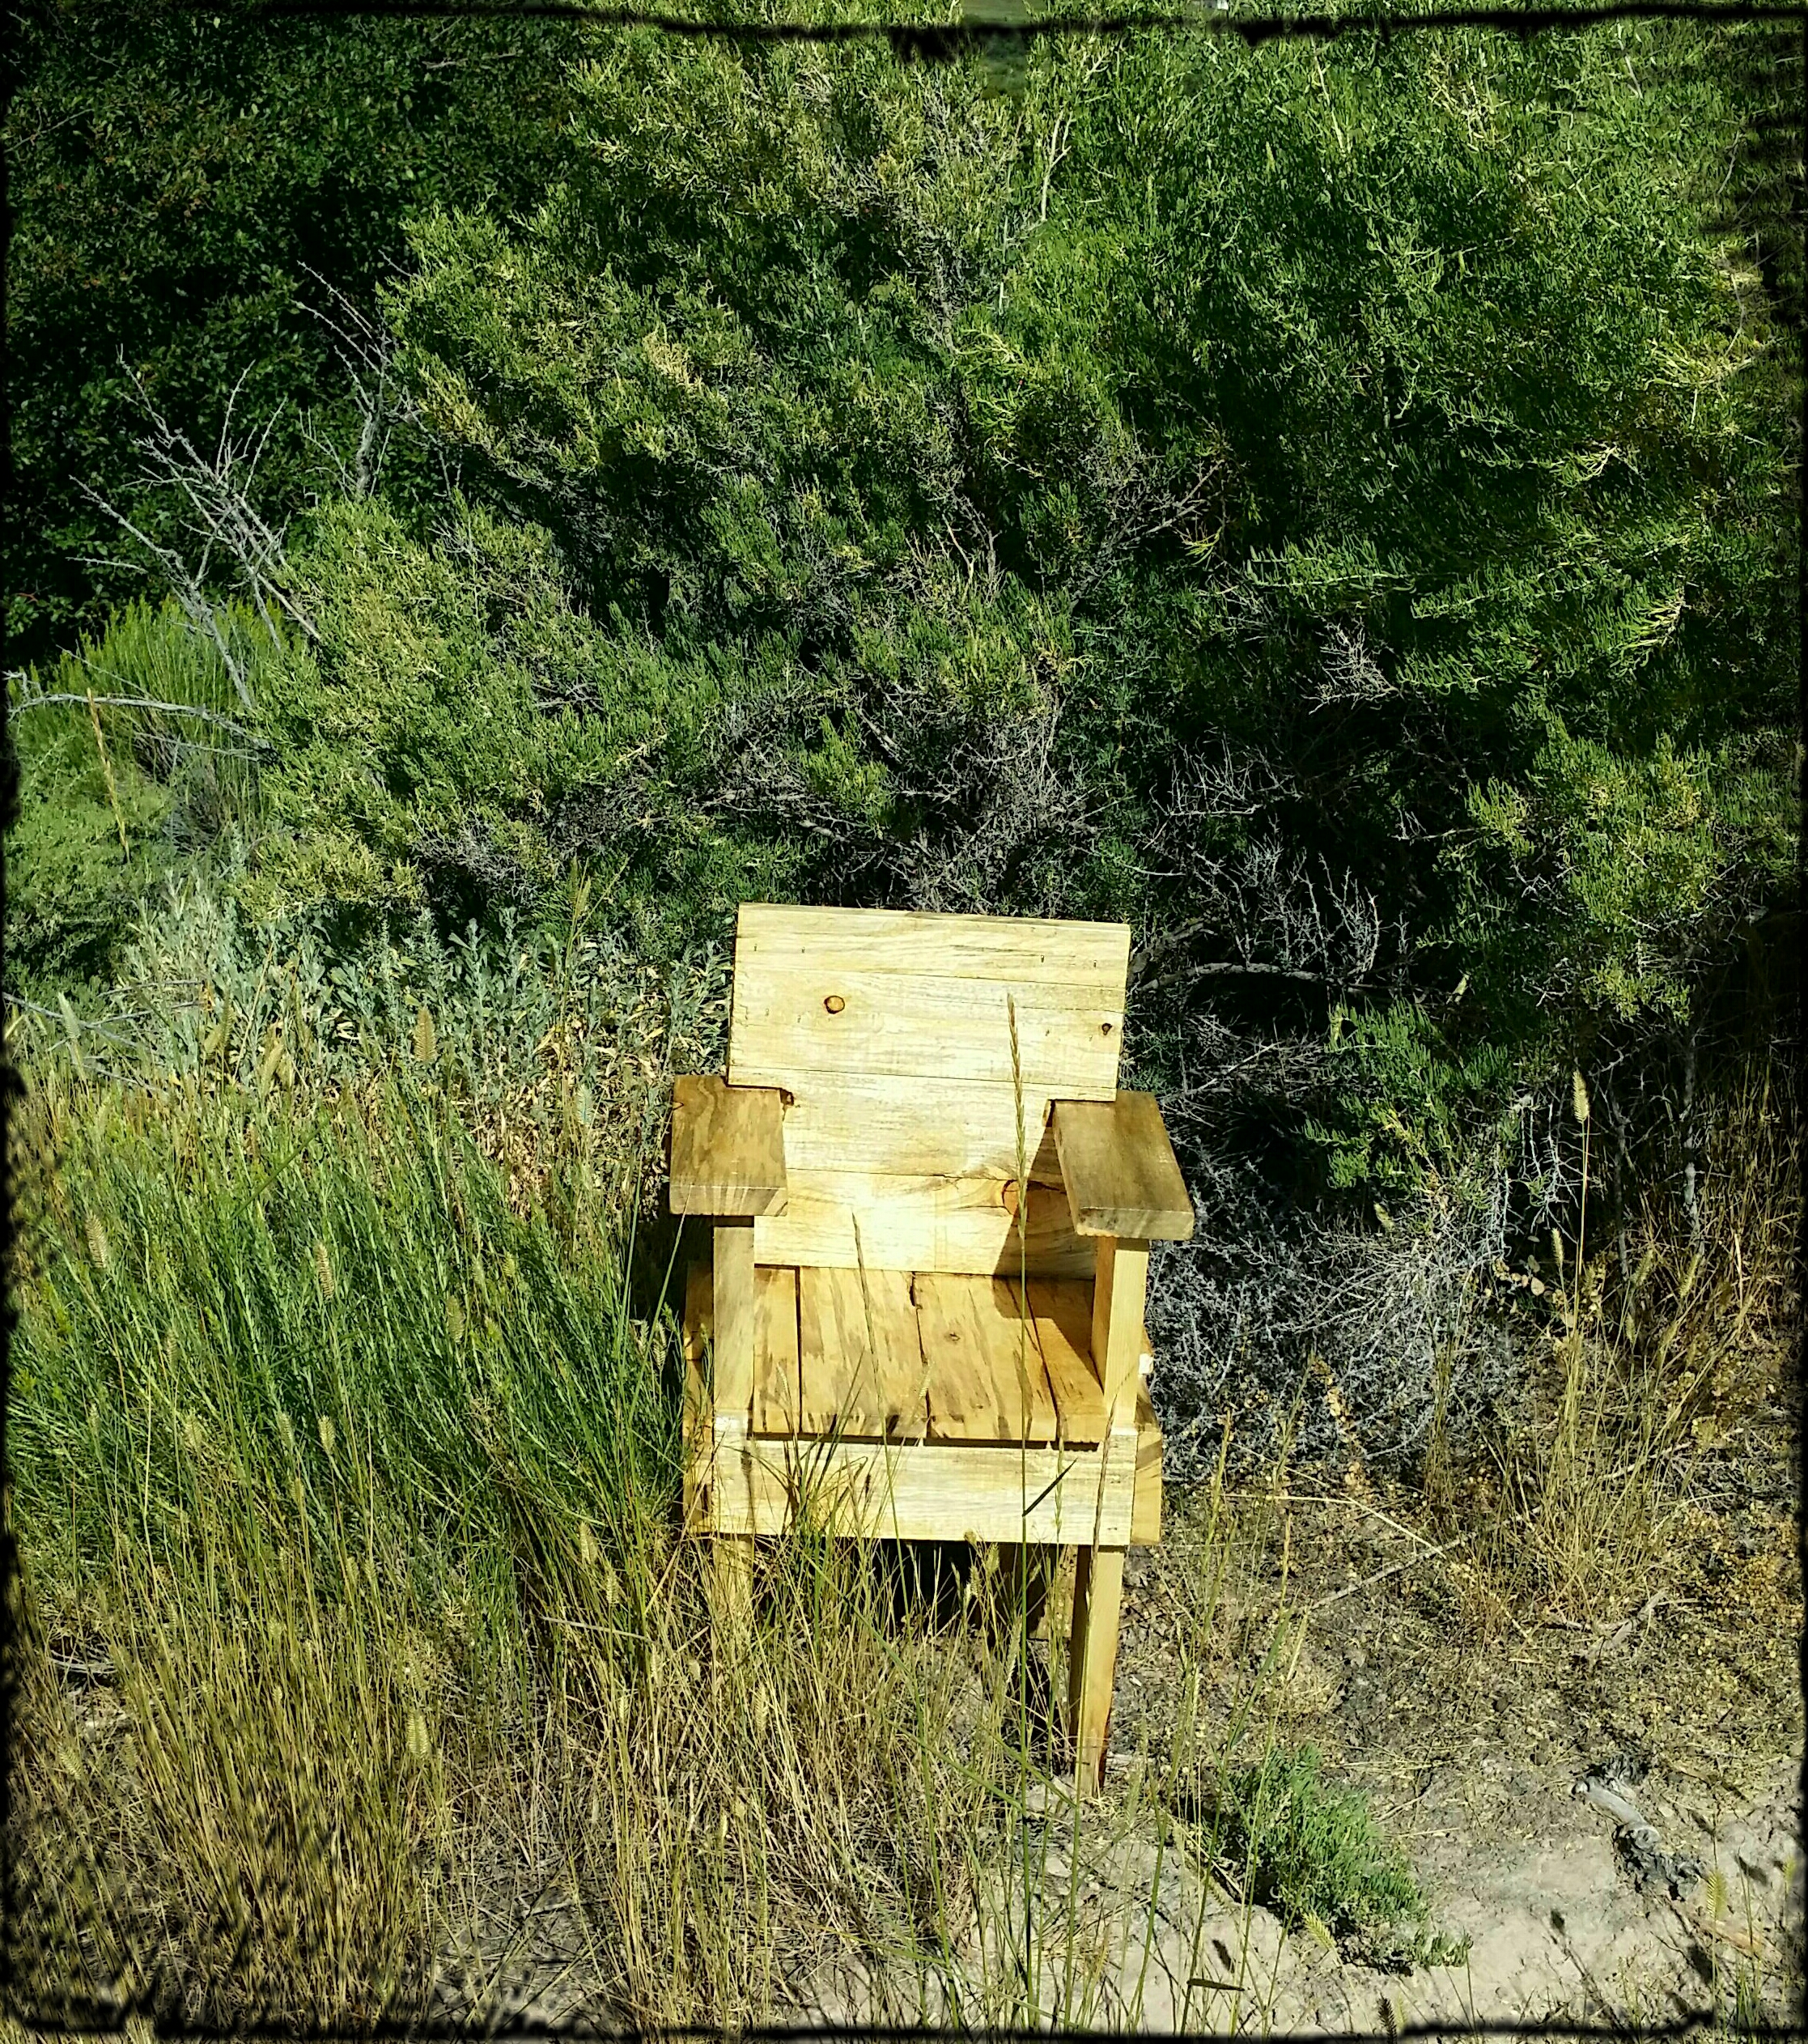 Simple Rustic Chair for Children